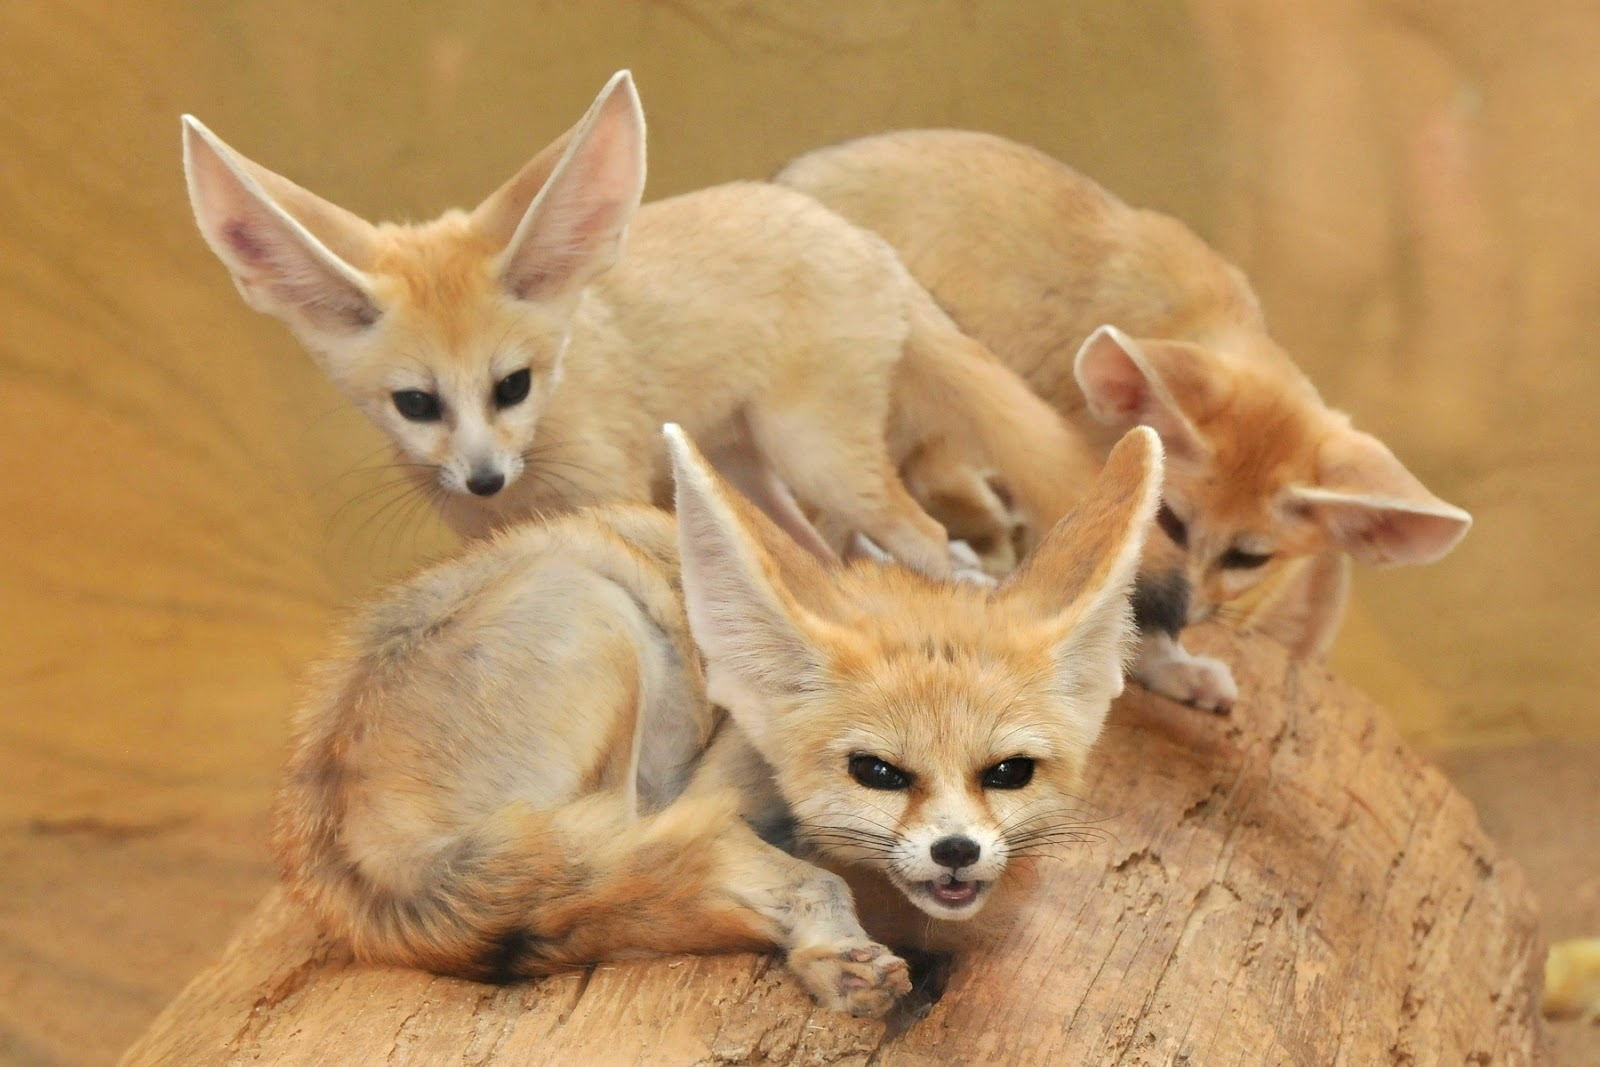 Fennec Fox Facts And Pictures-images | All Wildlife ...